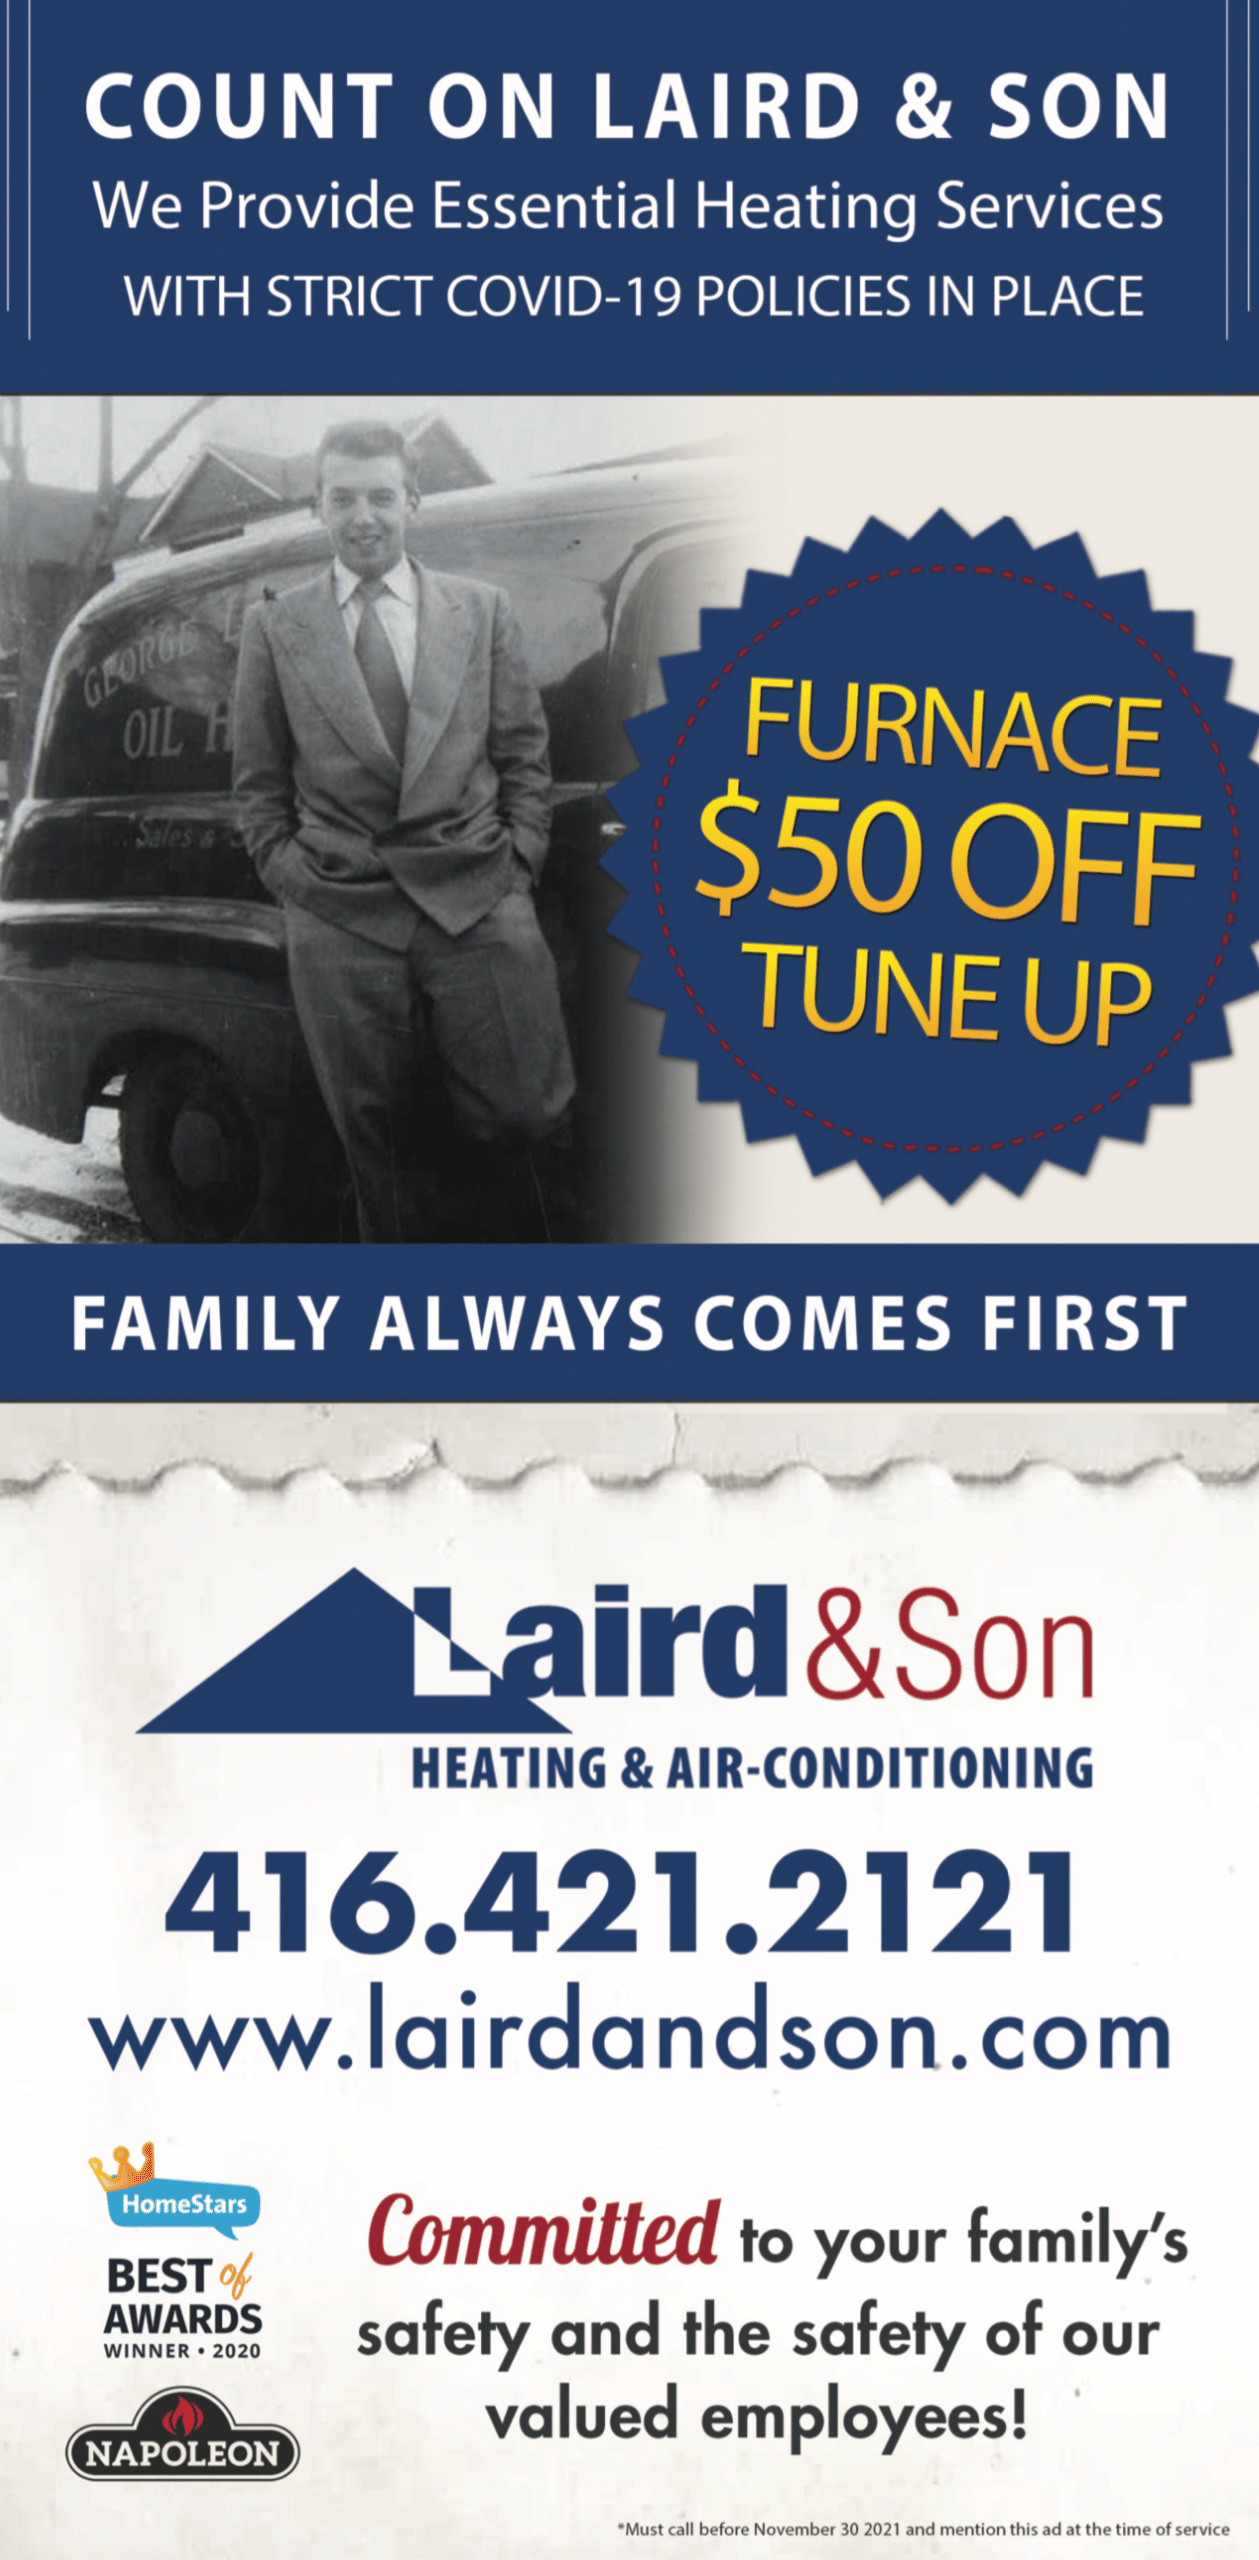 50-Off-Tune-Up-Furnace-2021